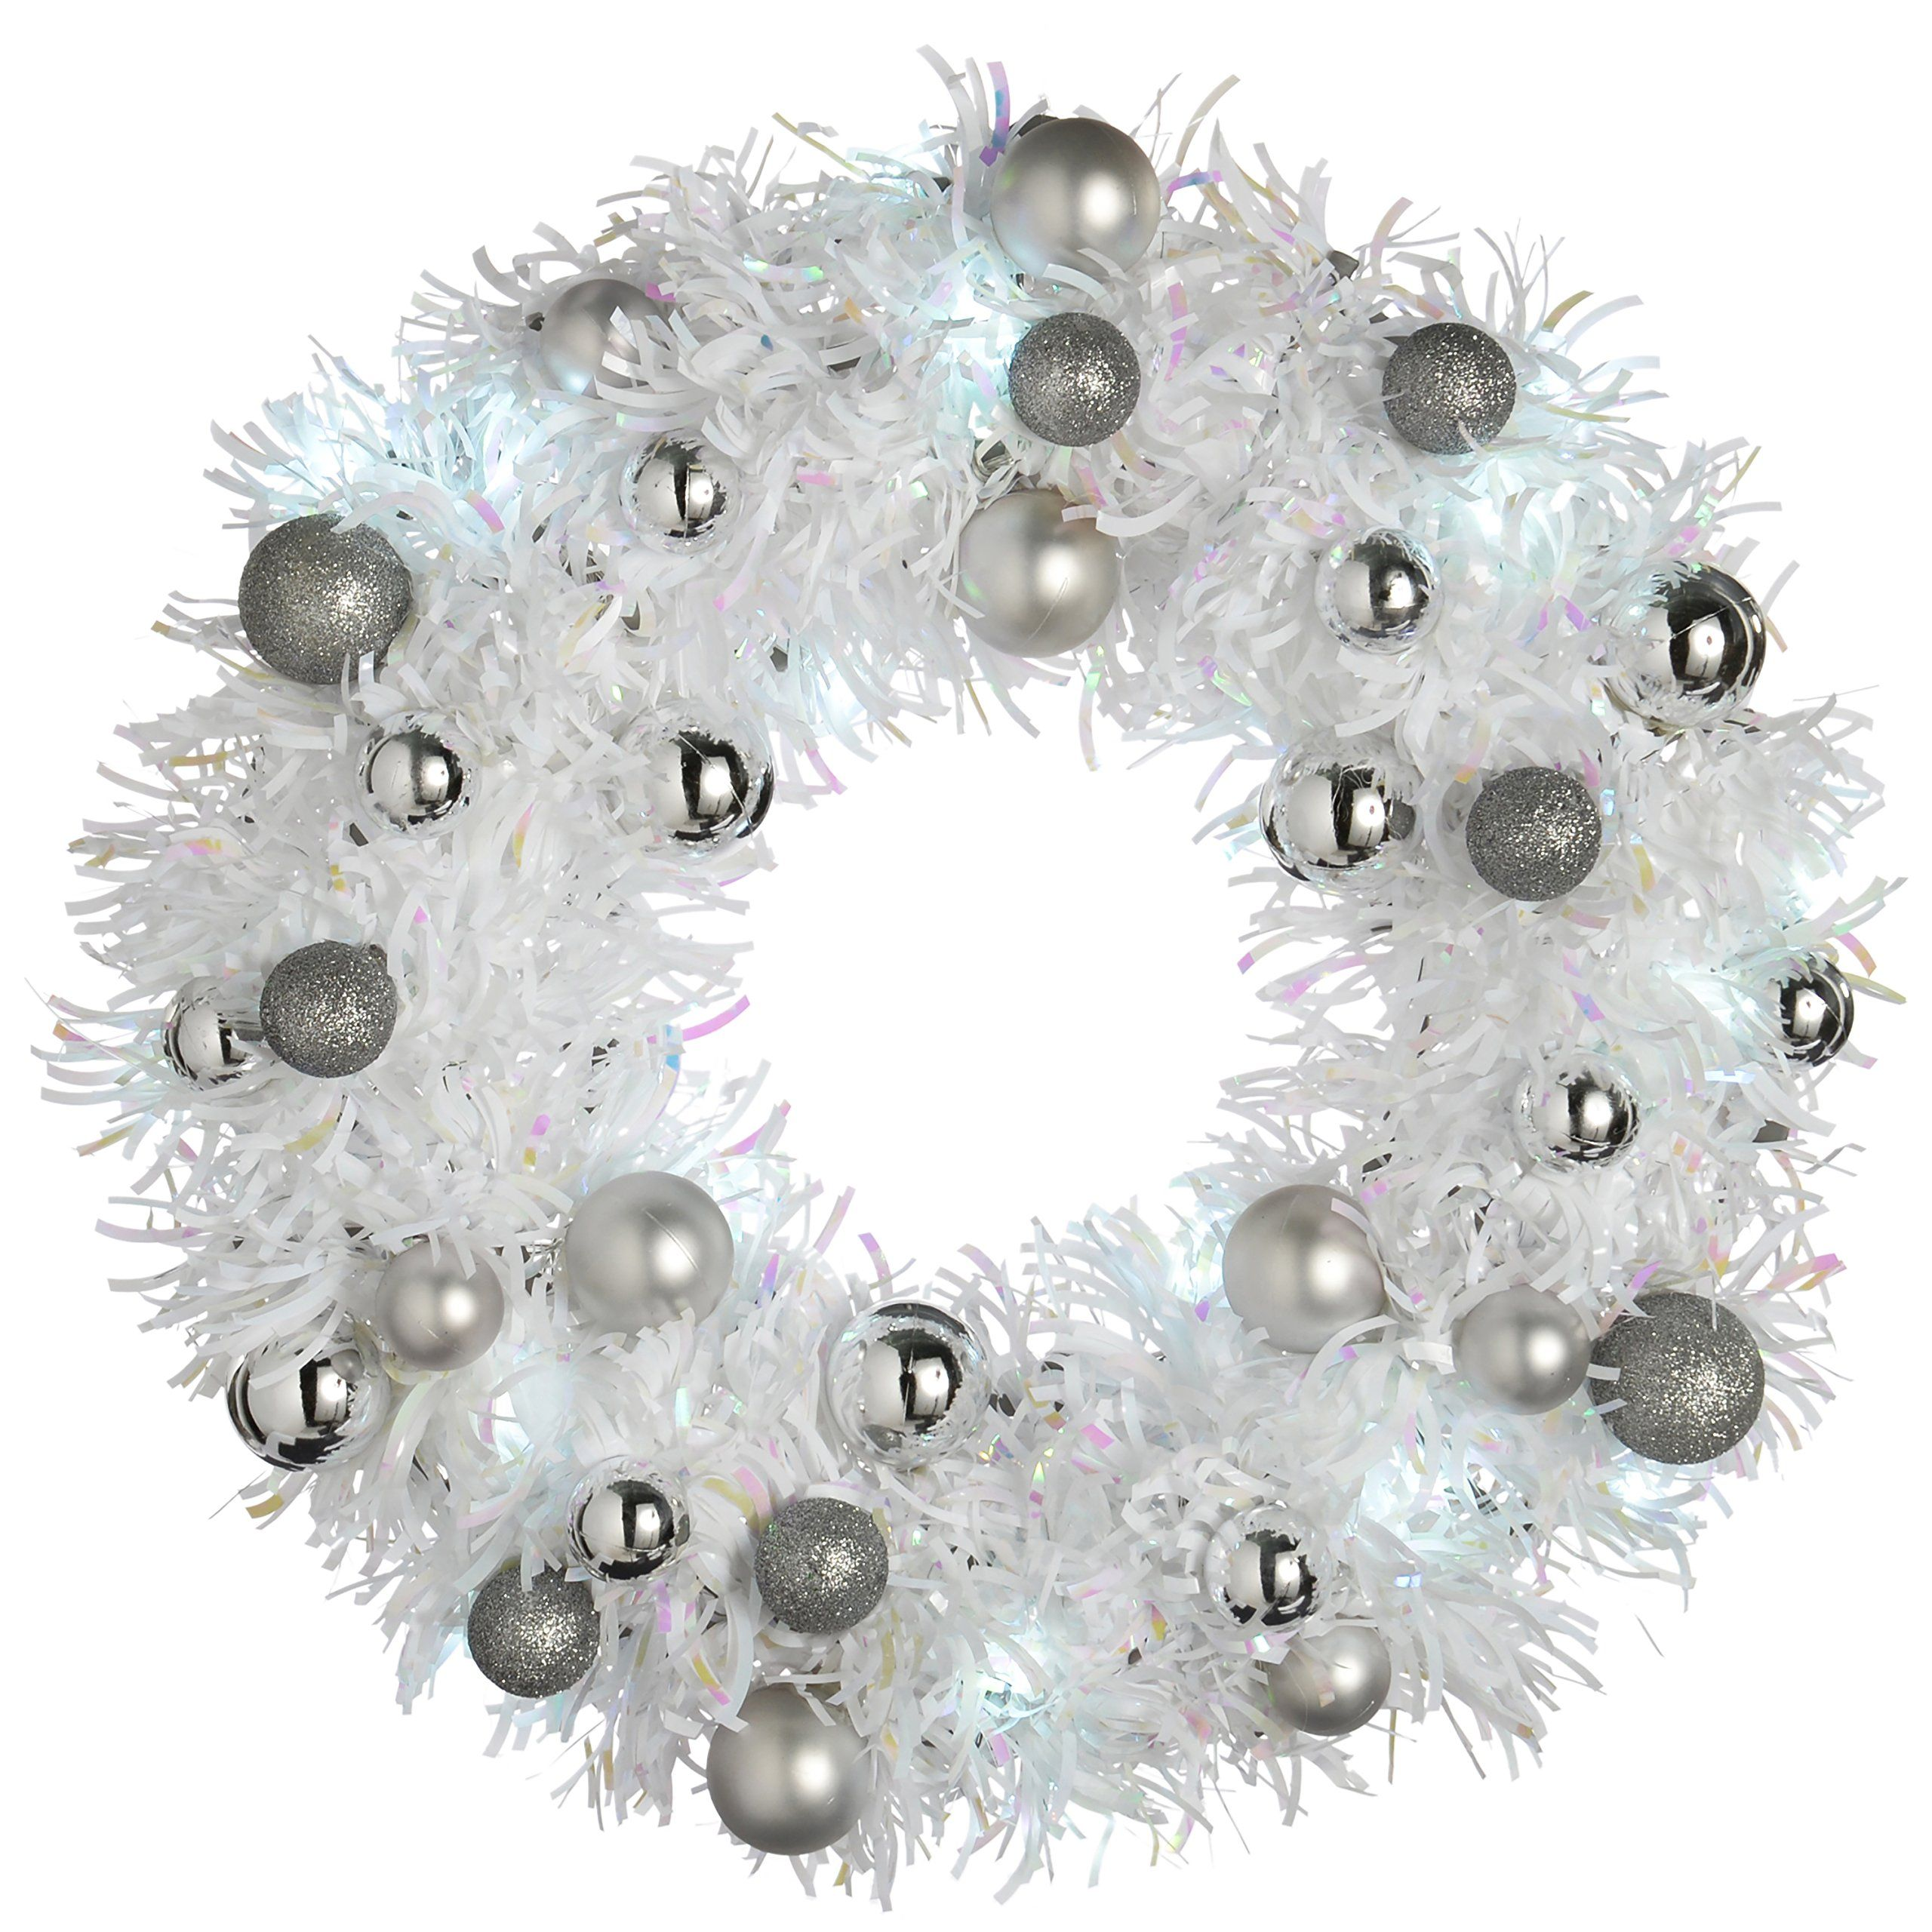 Werchristmas 36 Cm Pre Lit Tinsel Wreath With Baubles Led